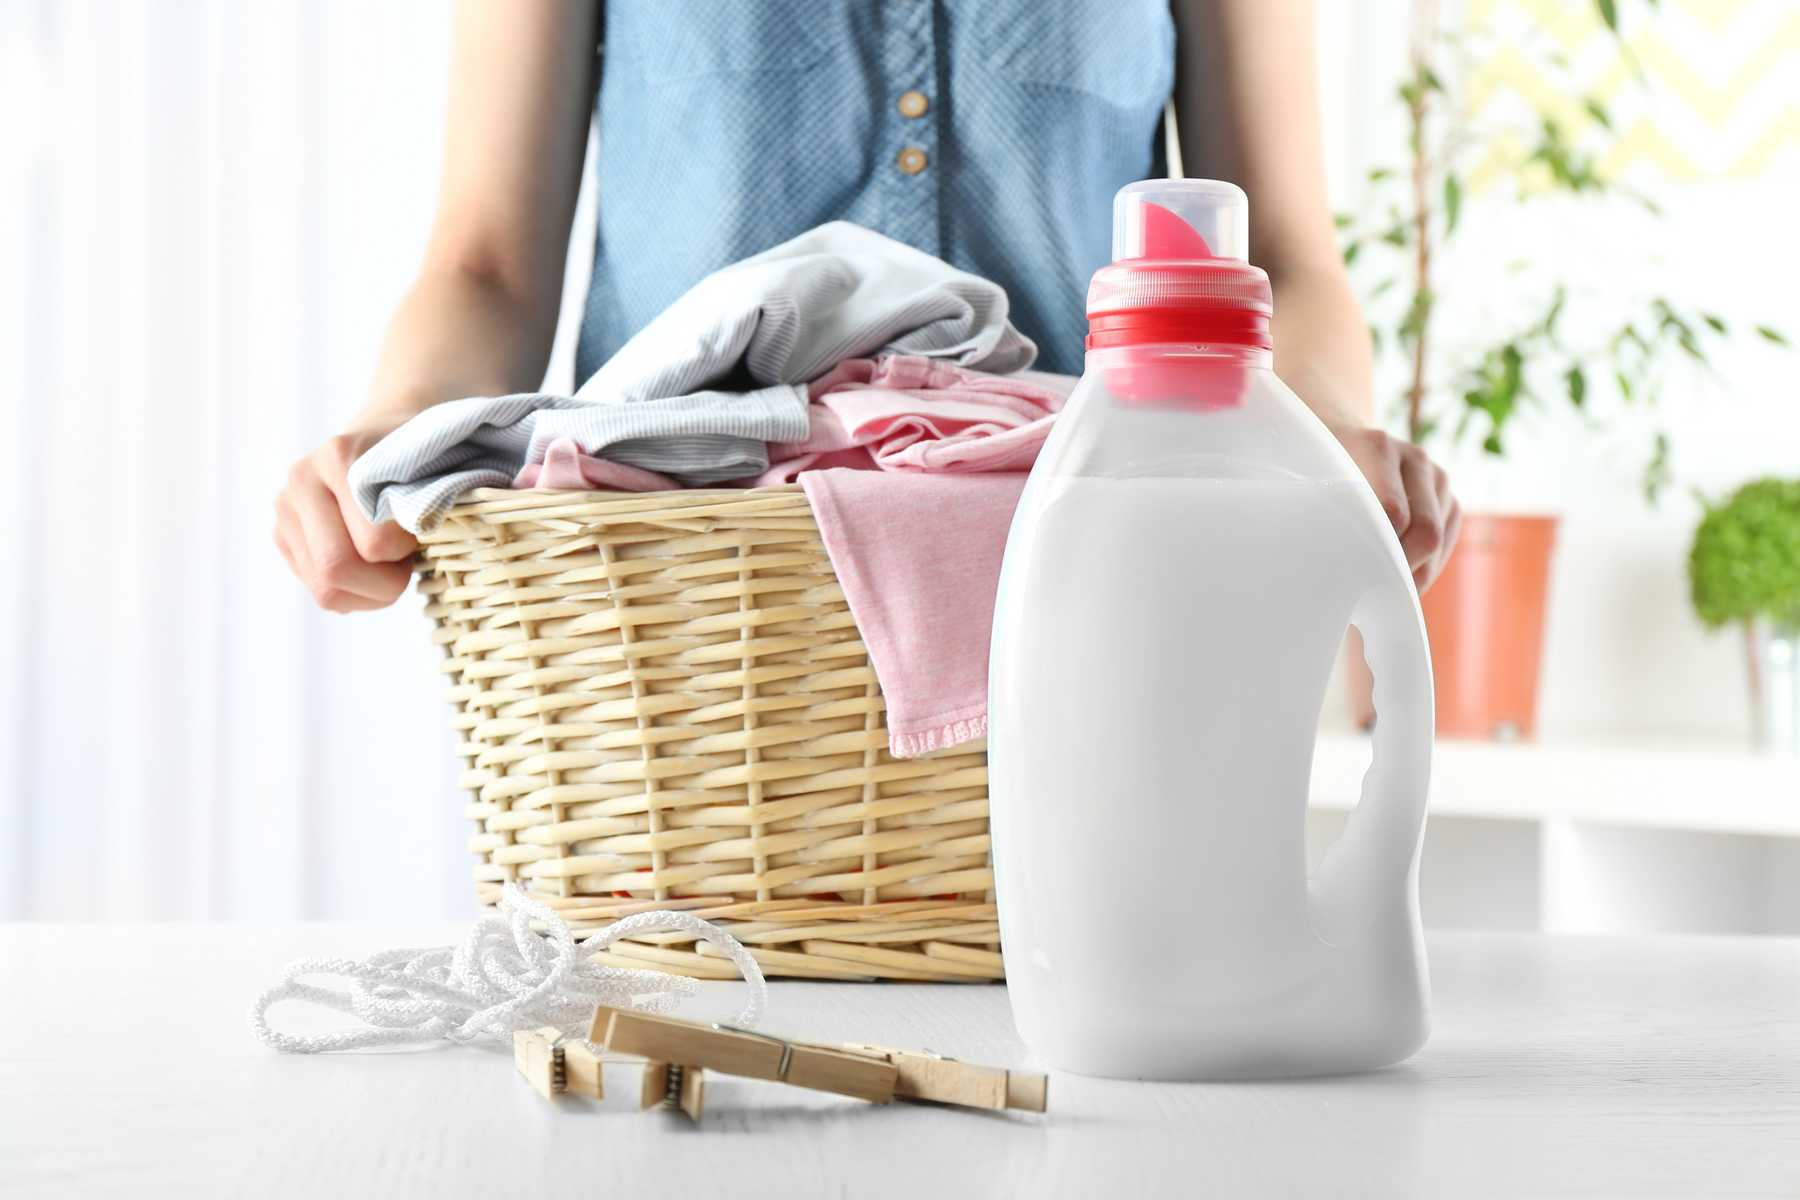 Soap vs Detergent? We Tell You What's Best For Your Laundry | Cleanipedia